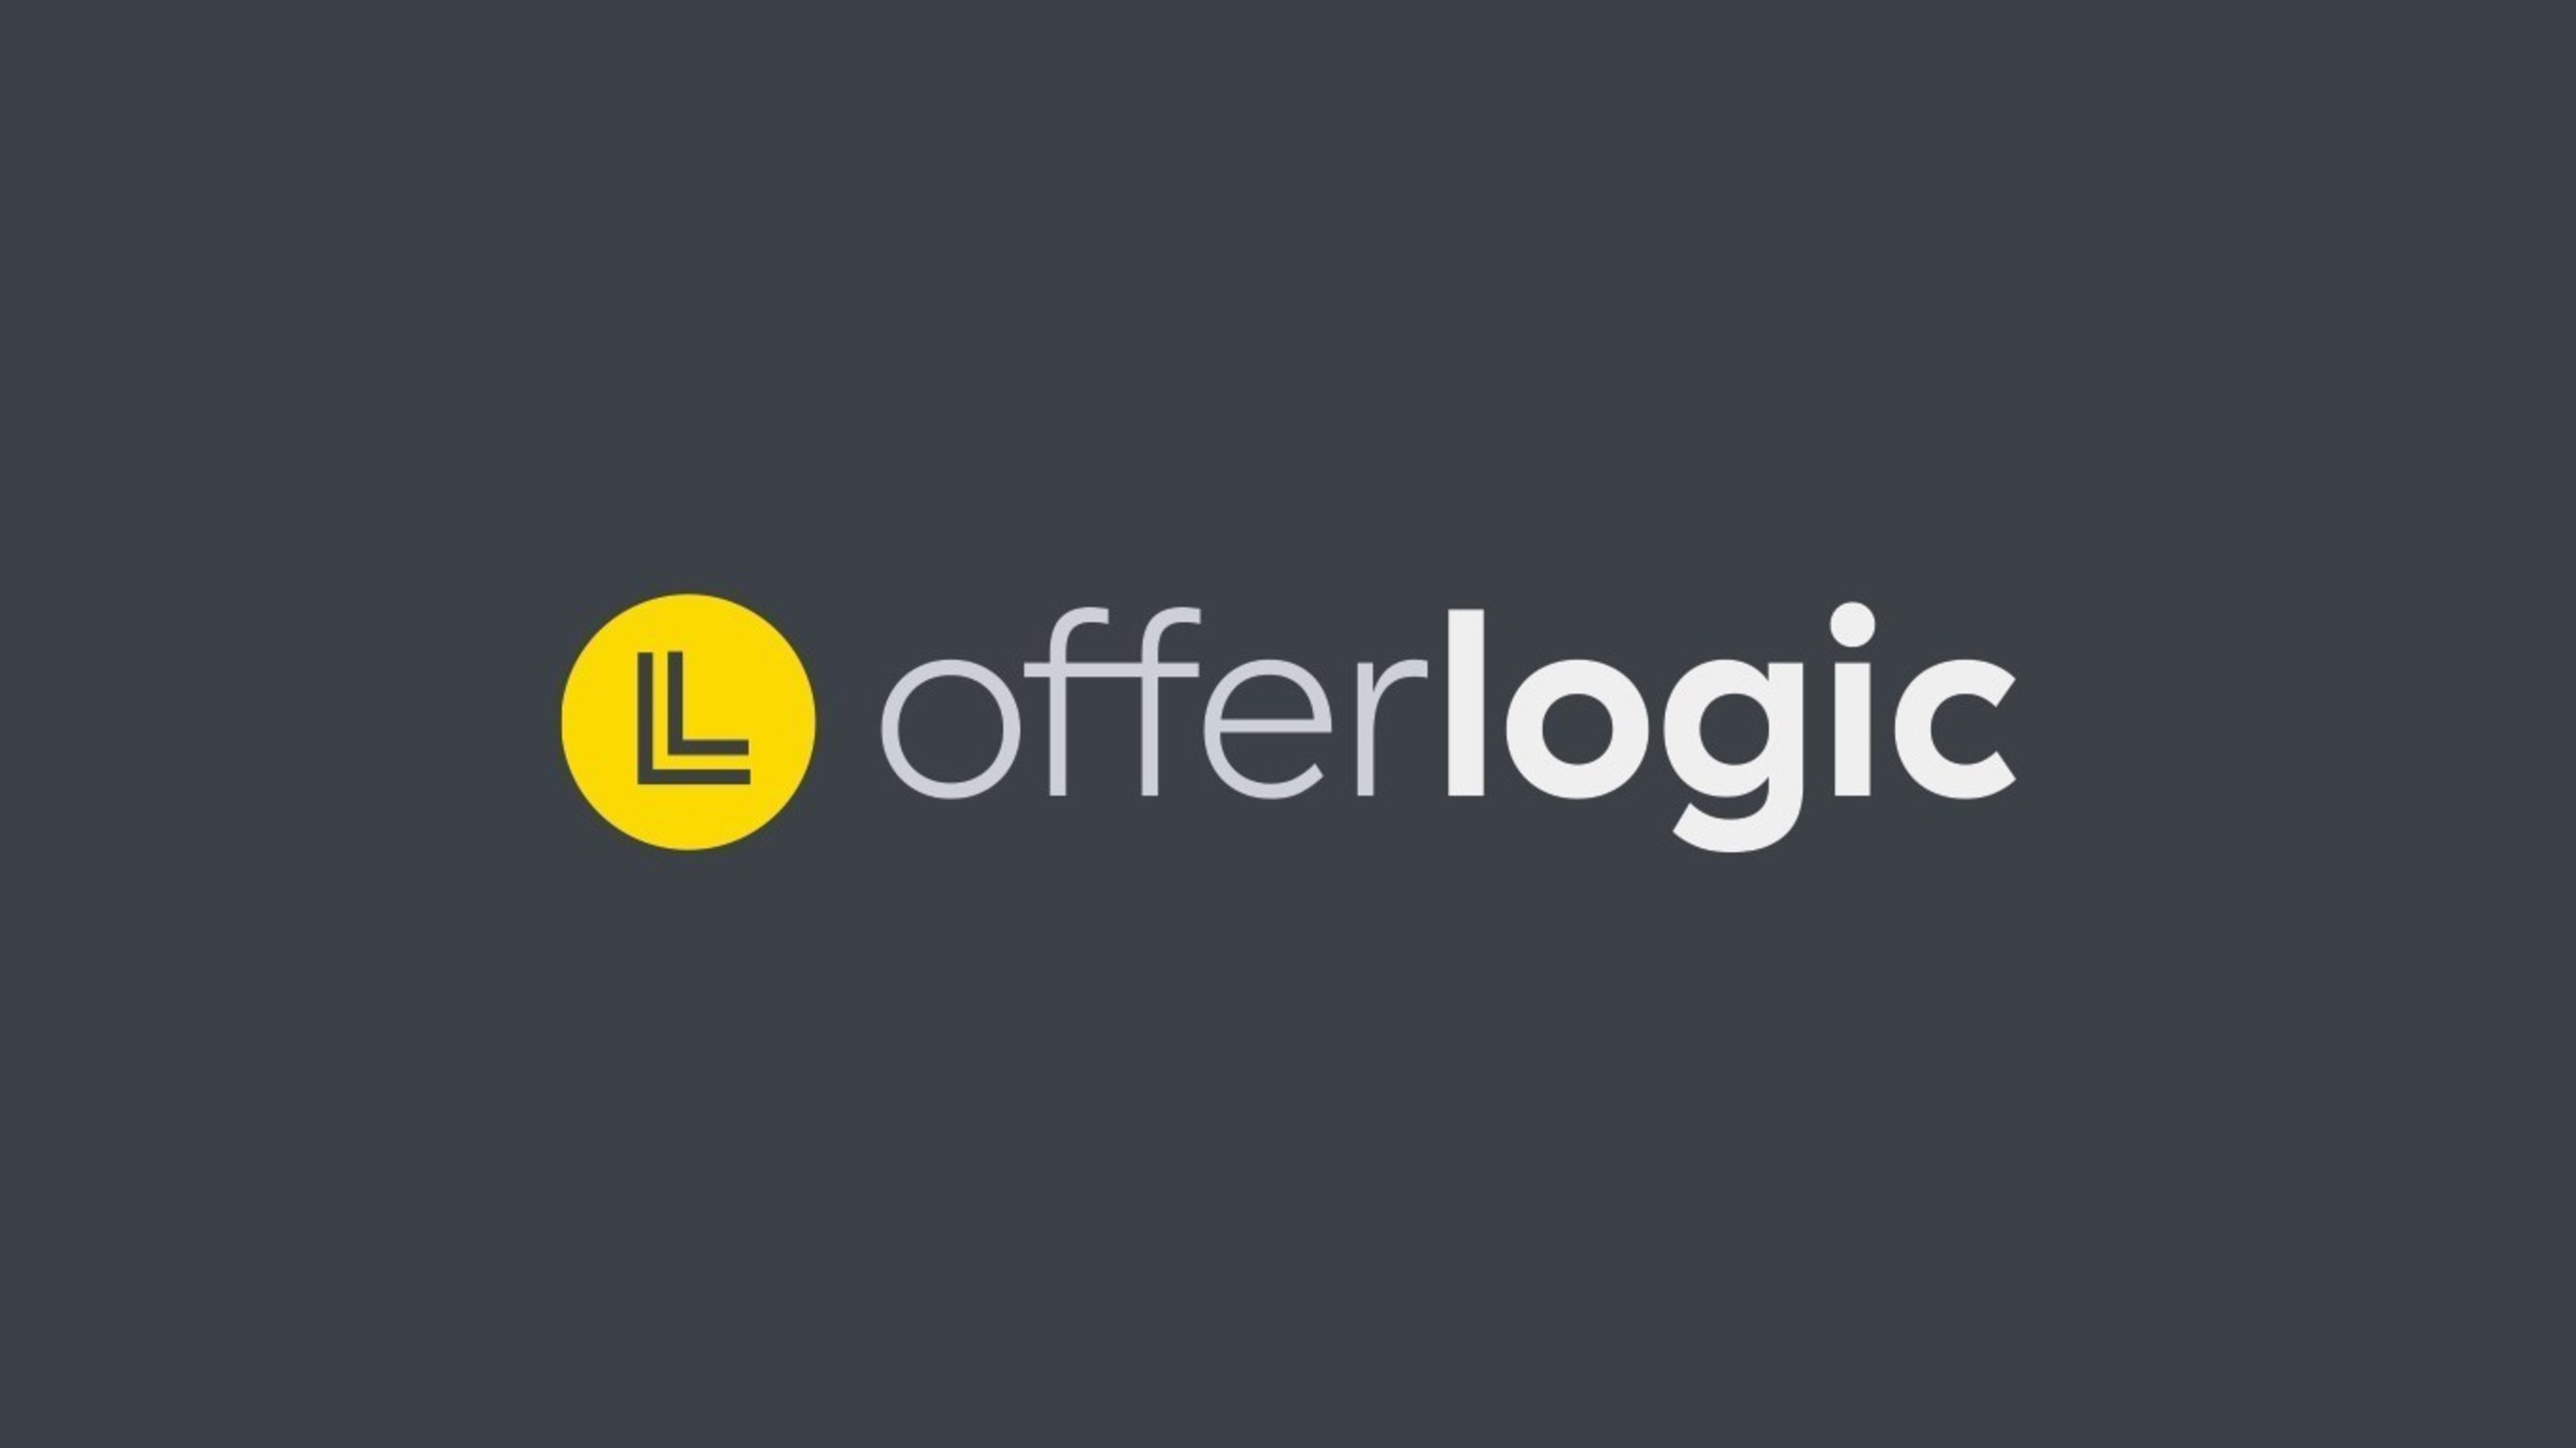 AdAgility Announces Company Name Change to OfferLogic To Align With